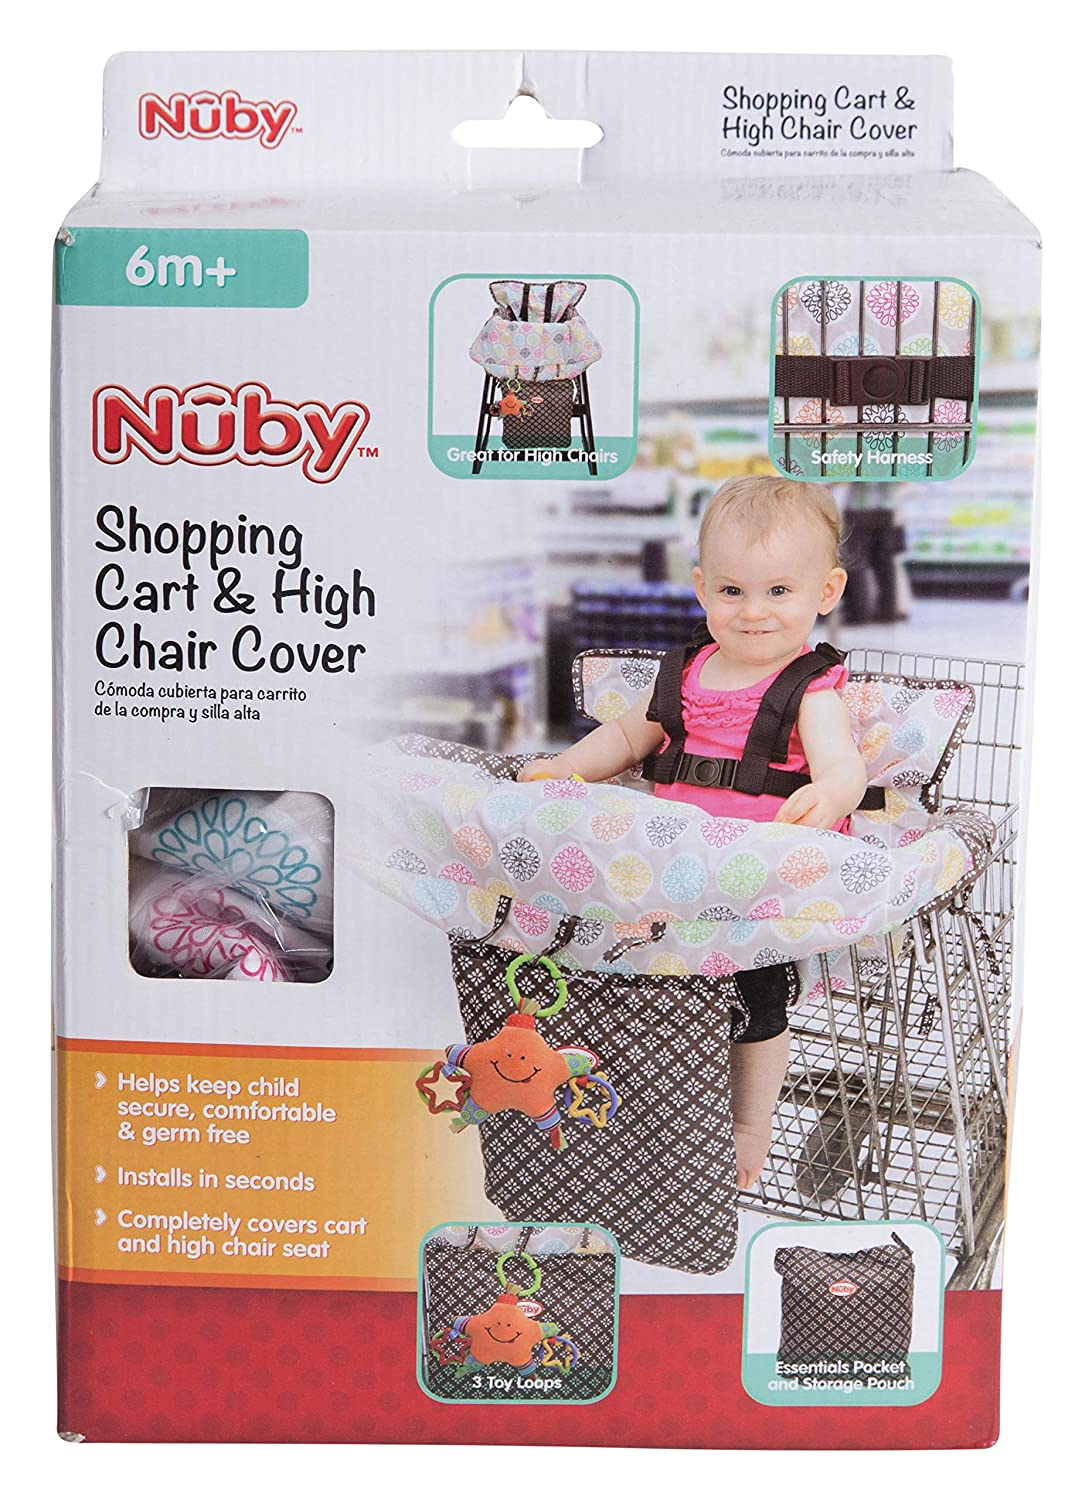 Amazon.com : Nuby Baby Shopping Cart Cover and High Chair Cover 2 in 1, Flower Medallion, High Chair Cushion, Baby Grocery Cart Cover, Infant High Chair ...